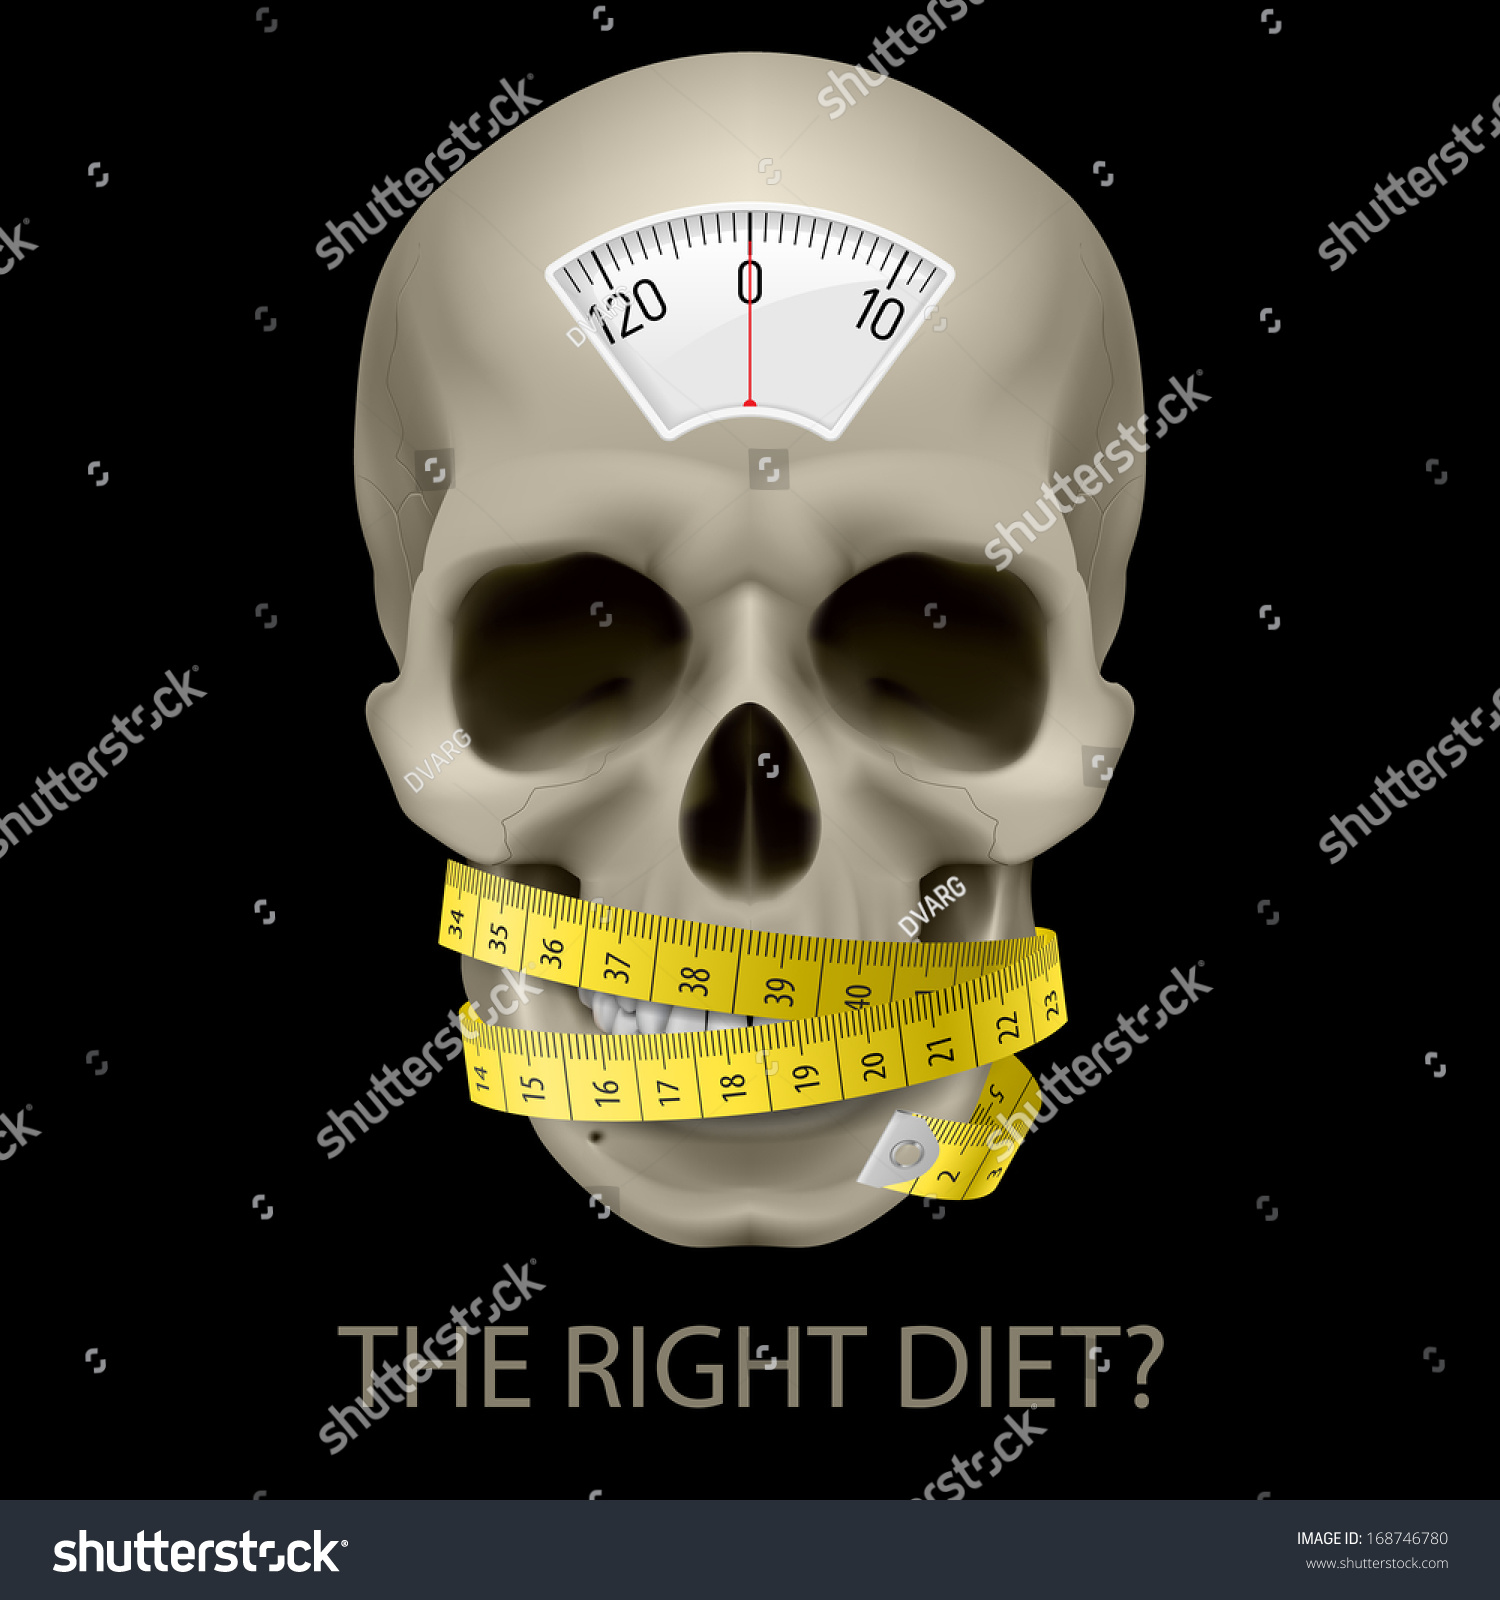 Skull balance scale measuring tape text stock vector 168746780 skull with balance scale measuring tape and text beneath as symbol of unhealthy diet buycottarizona Images